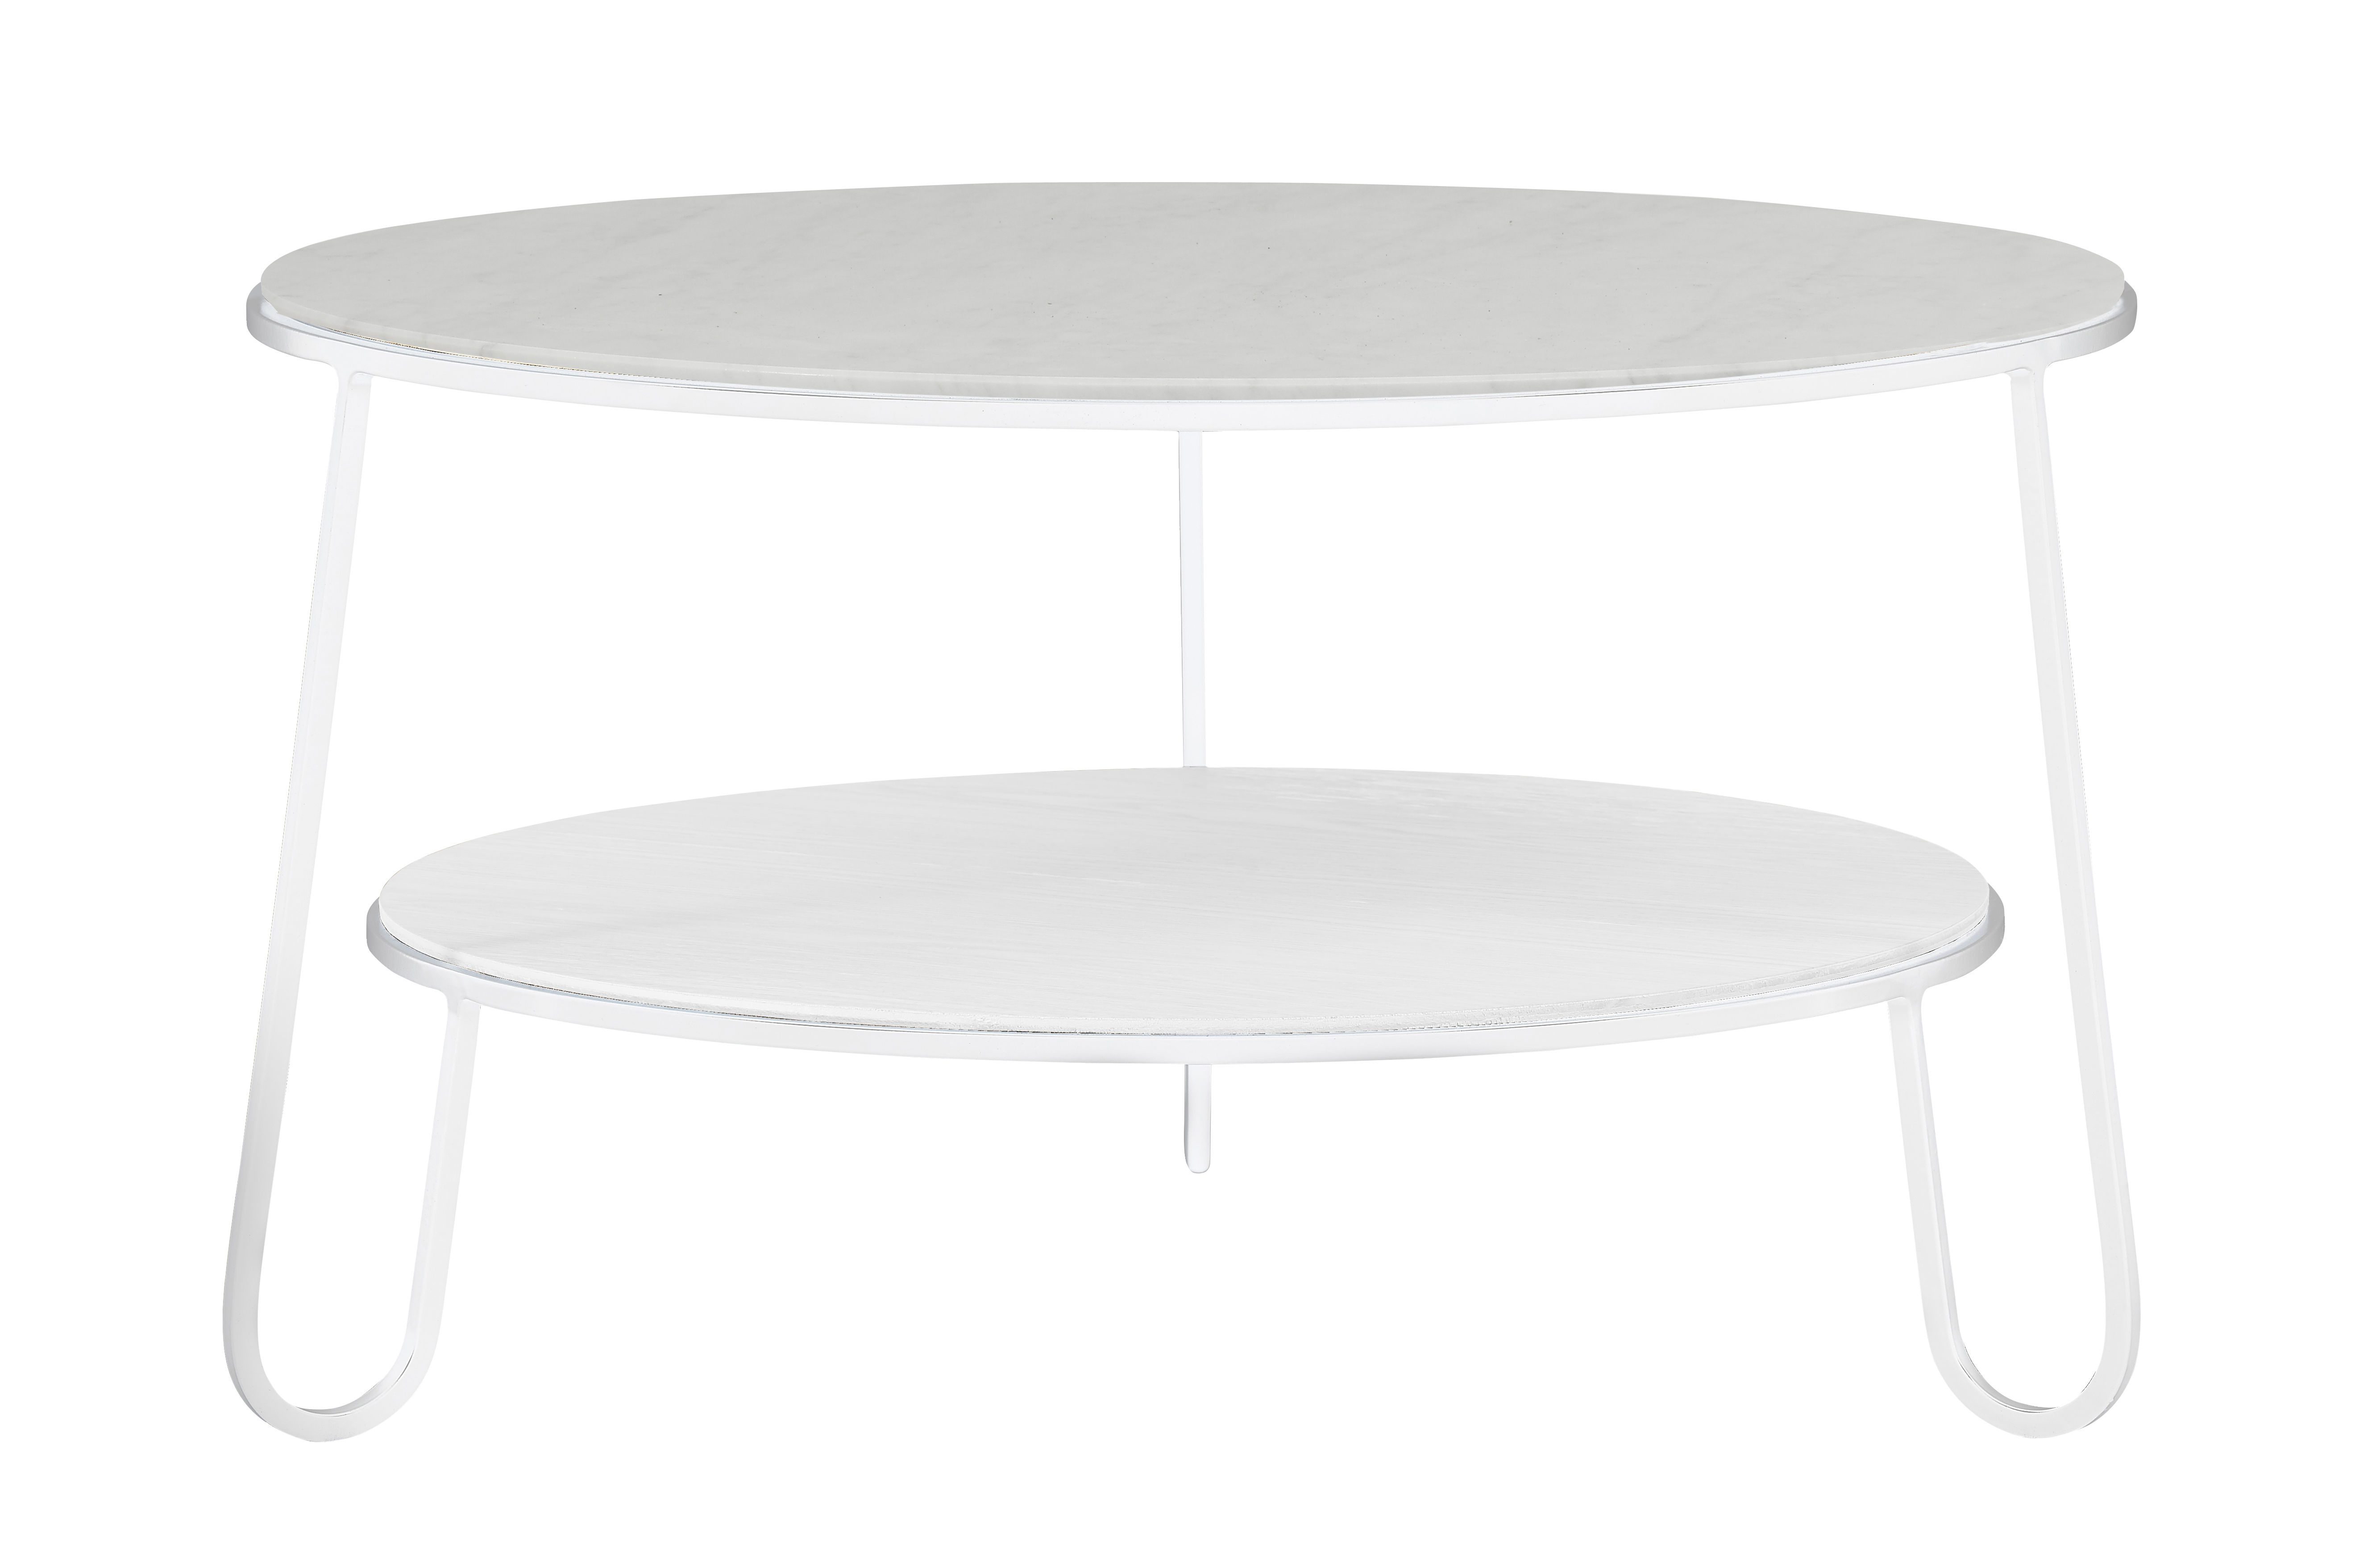 Furniture - Coffee Tables - Eugénie Small Coffee table - / Ø 70 - Marble by Hartô - White / Marble - Marble, Steel, Wood